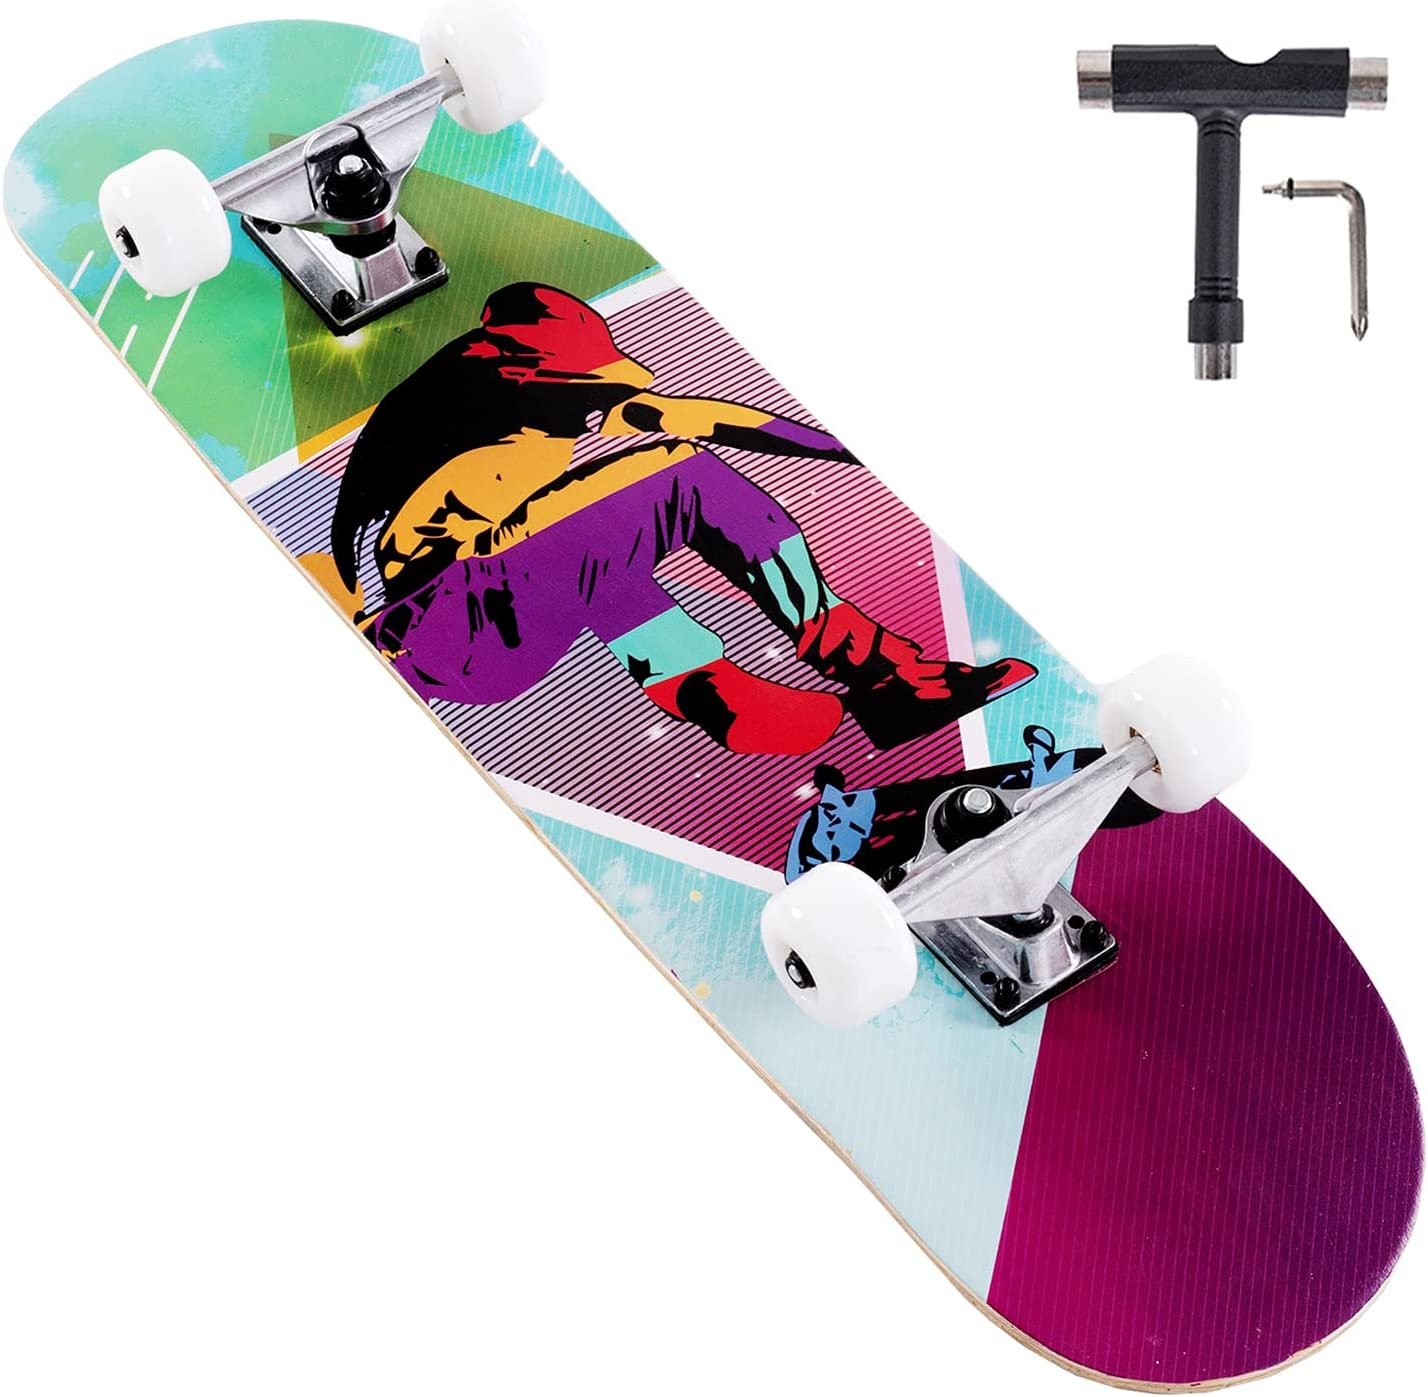 35% OFF Lamberia 31 Inch Skateboard Pro Complete B Girls for Los Angeles Mall